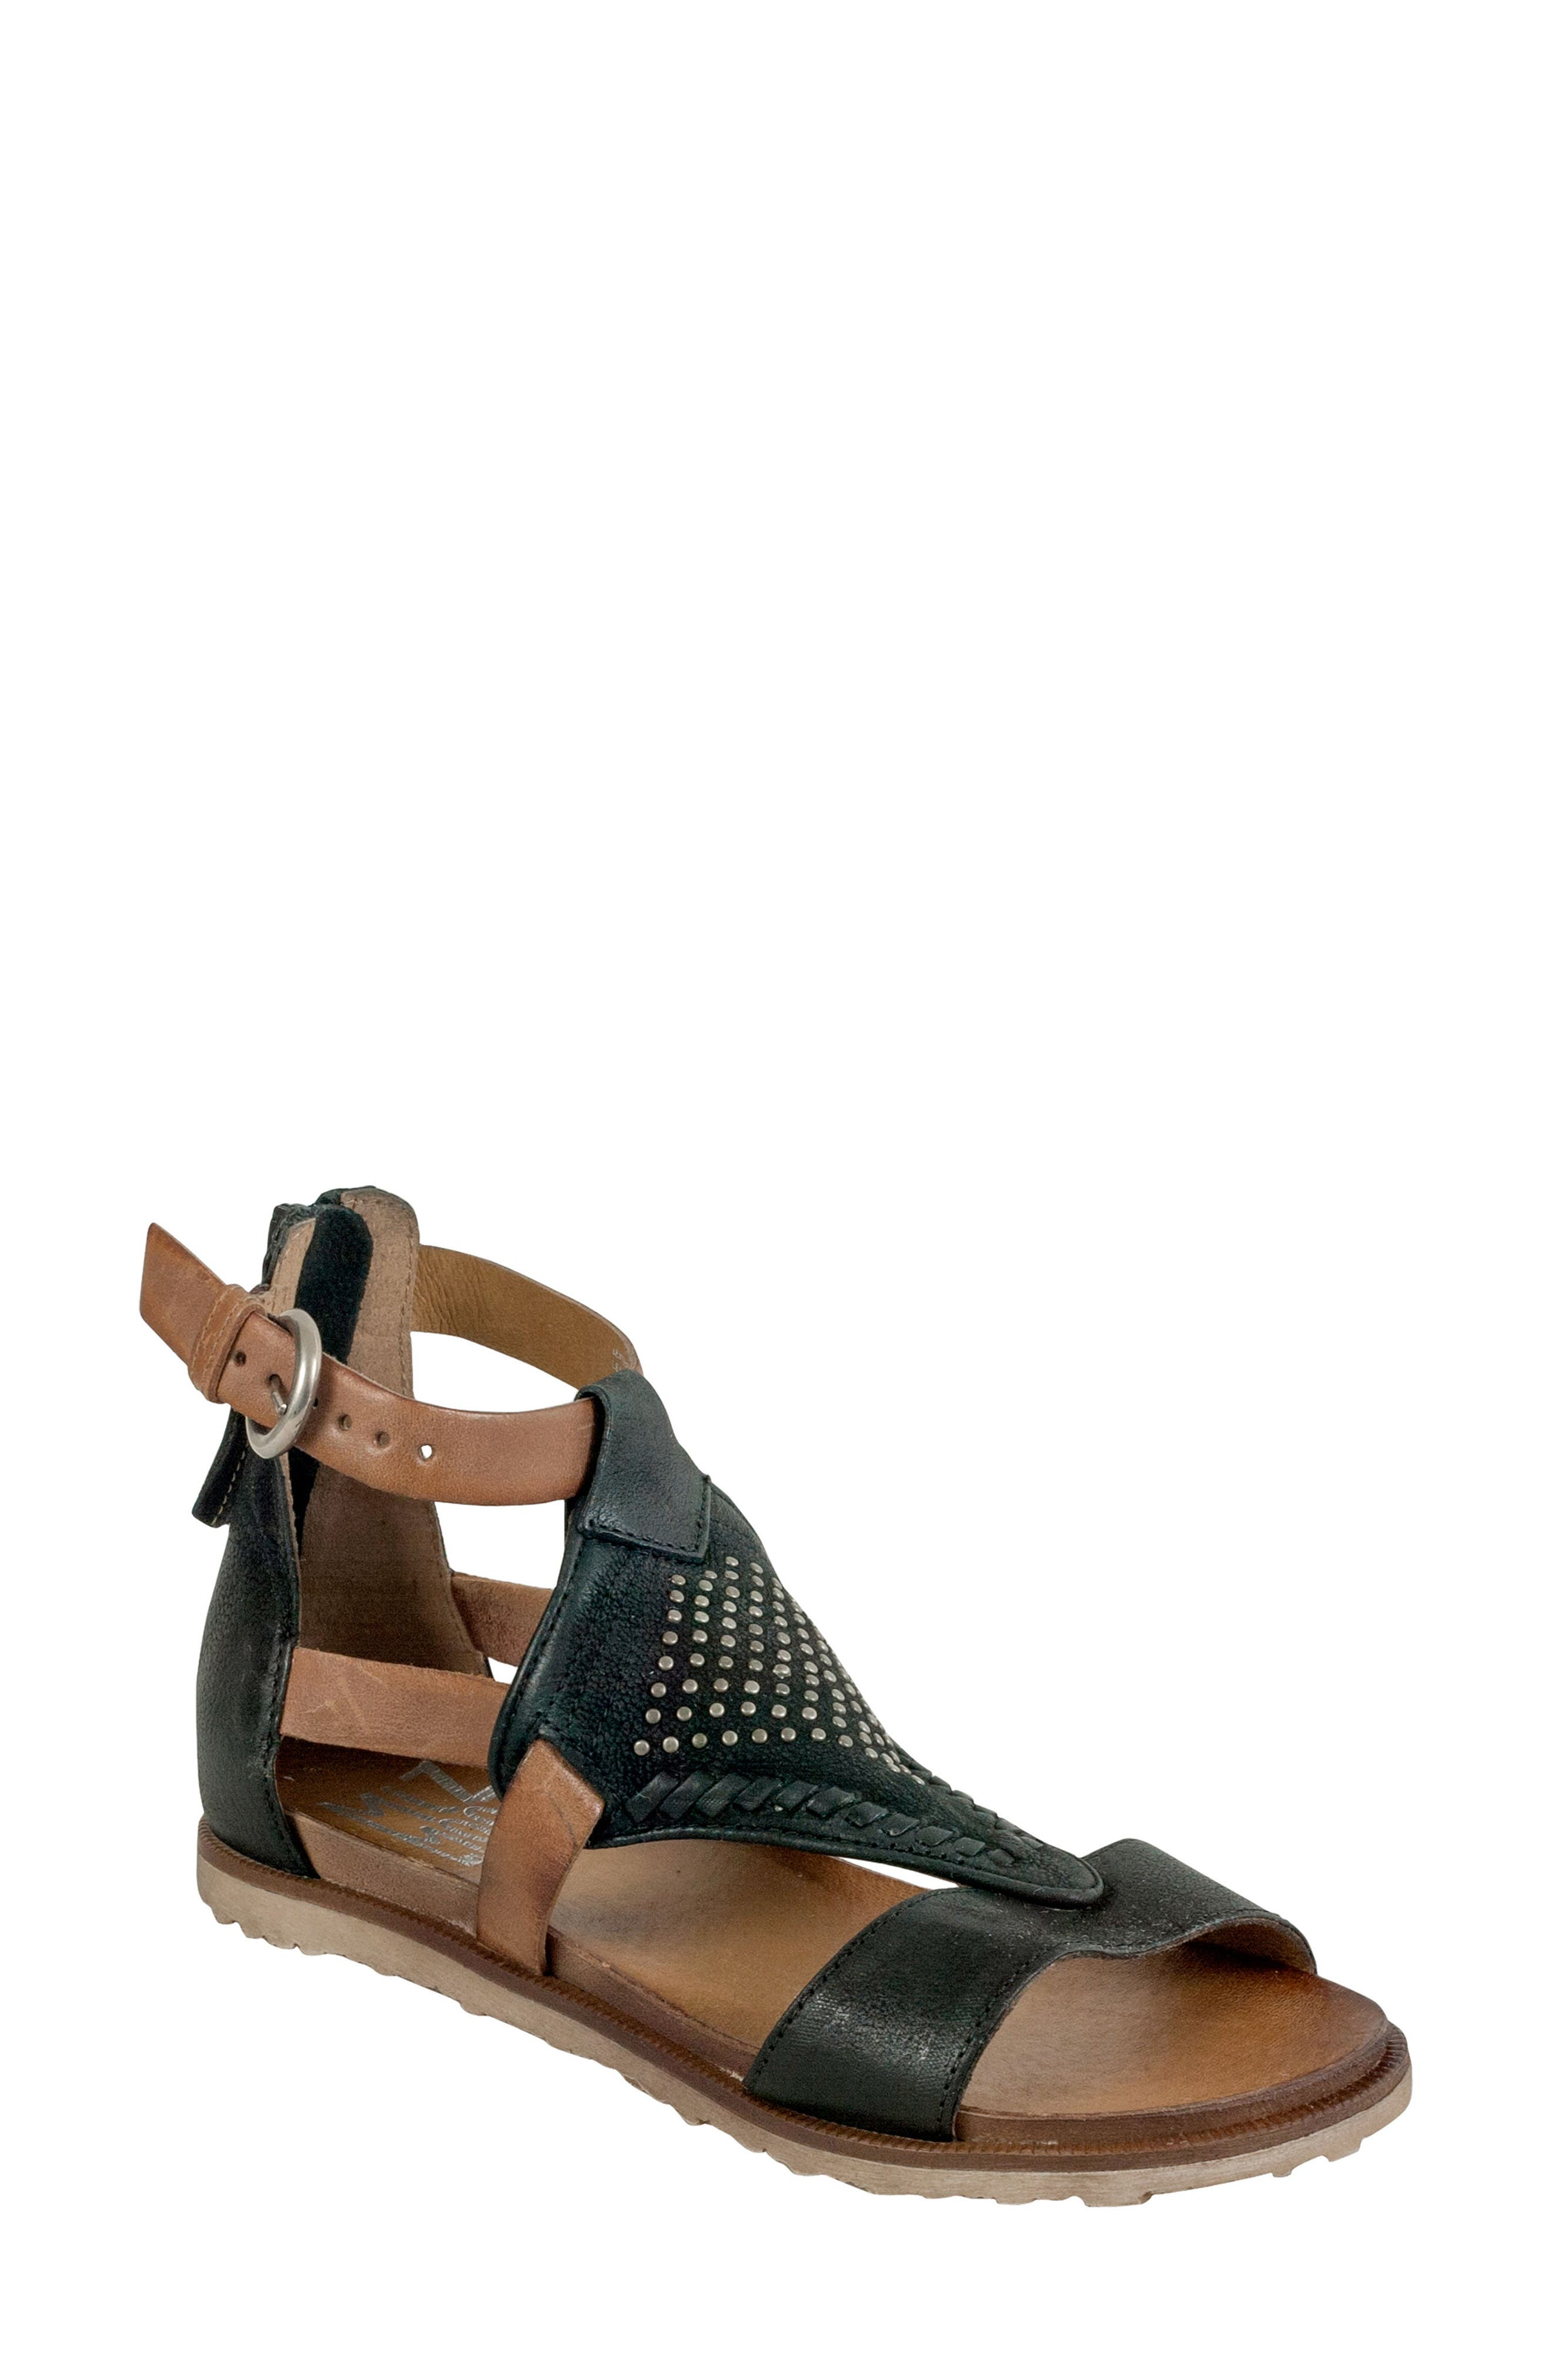 Tessa Studded Diamond Sandal,                             Main thumbnail 1, color,                             Black Leather